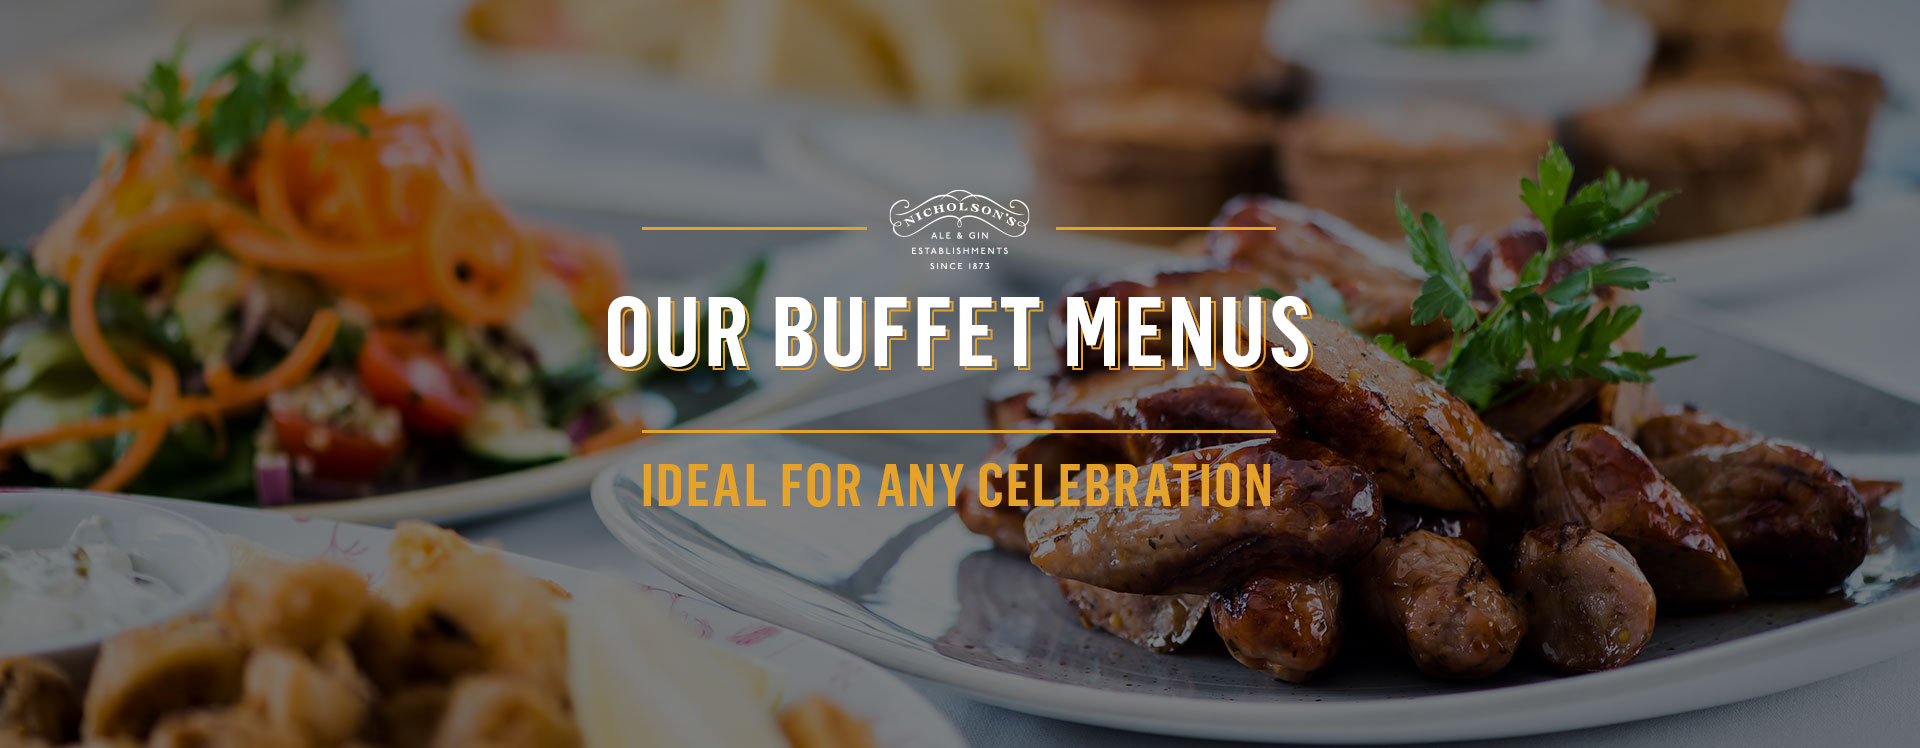 Buffet menu at The Old Thameside Inn - Book a table